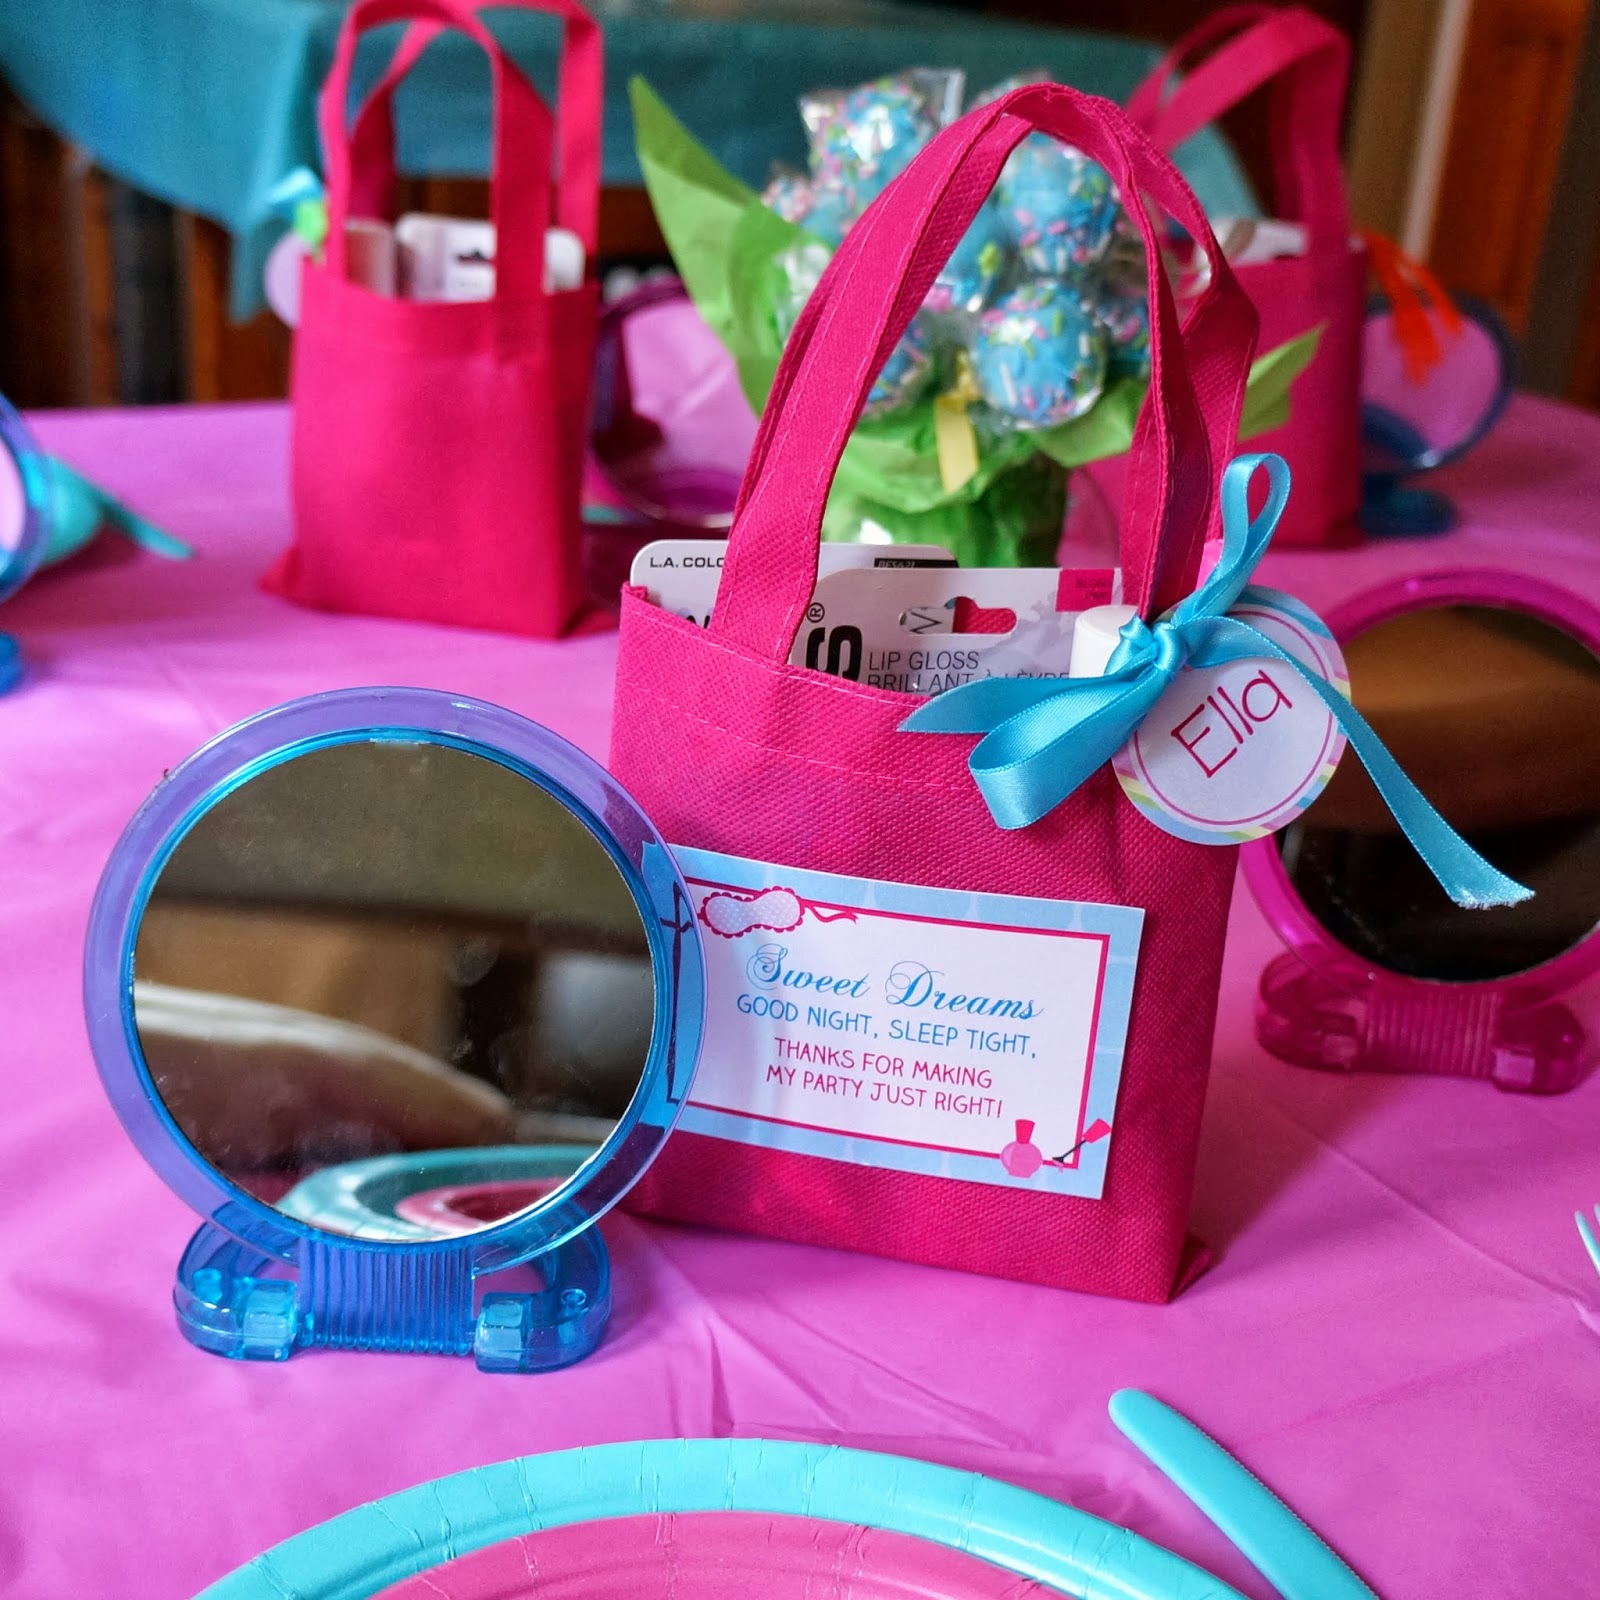 SANDRA M DESIGNS: Real Party: 7th Birthday Slumber Party